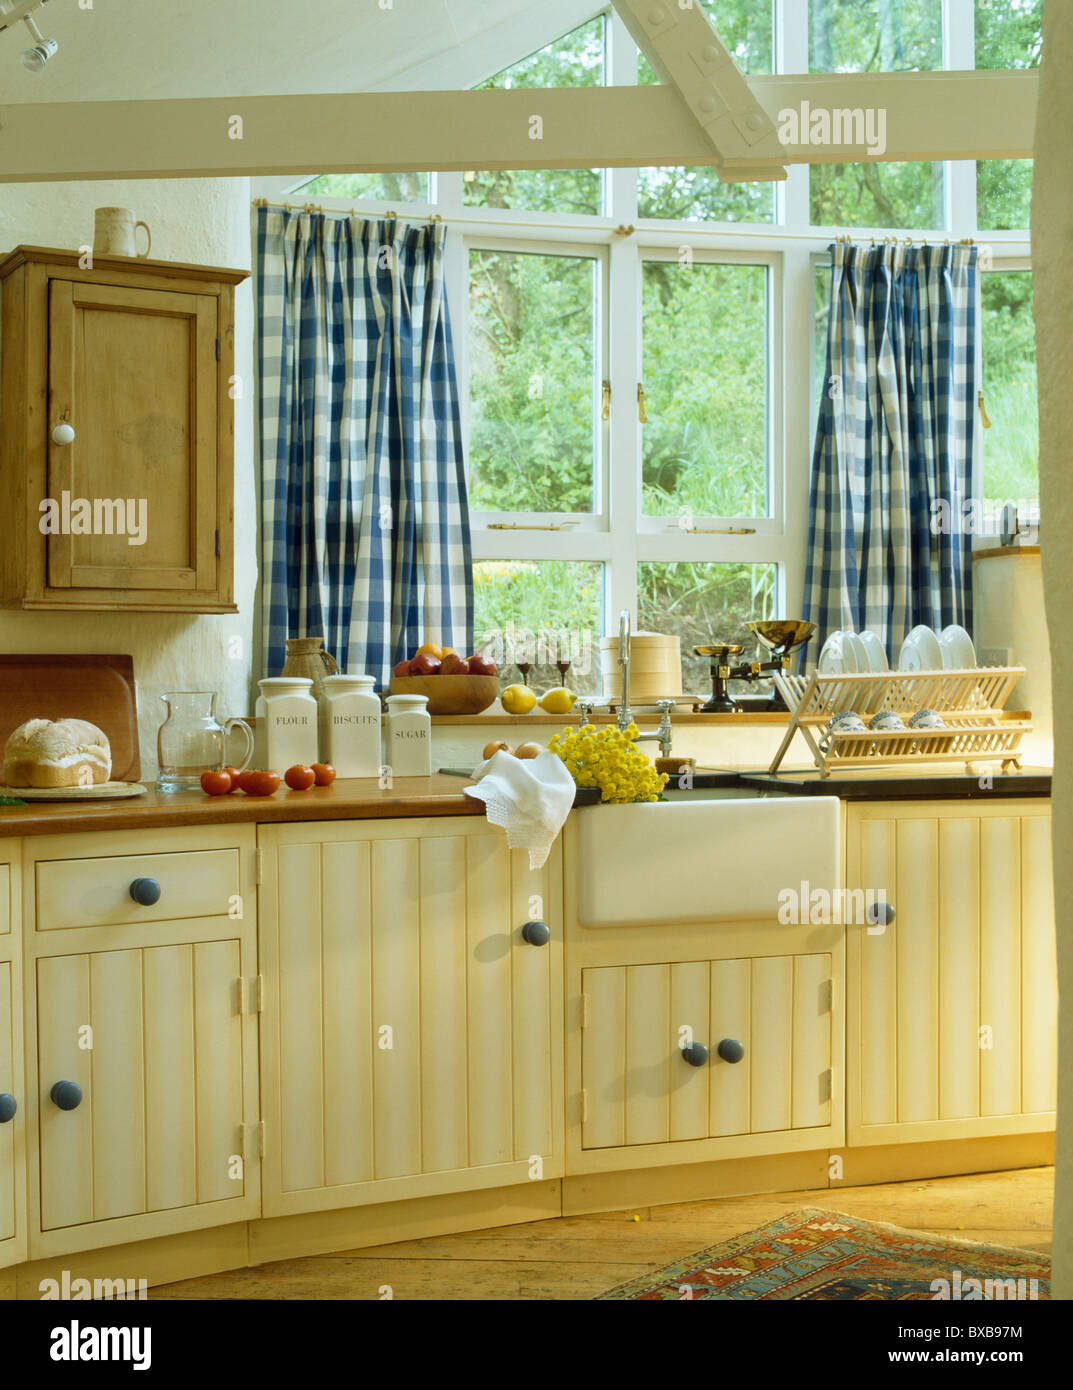 Cottage Kitchens Blue White Checked Curtains On Window Above Sink In Cottage